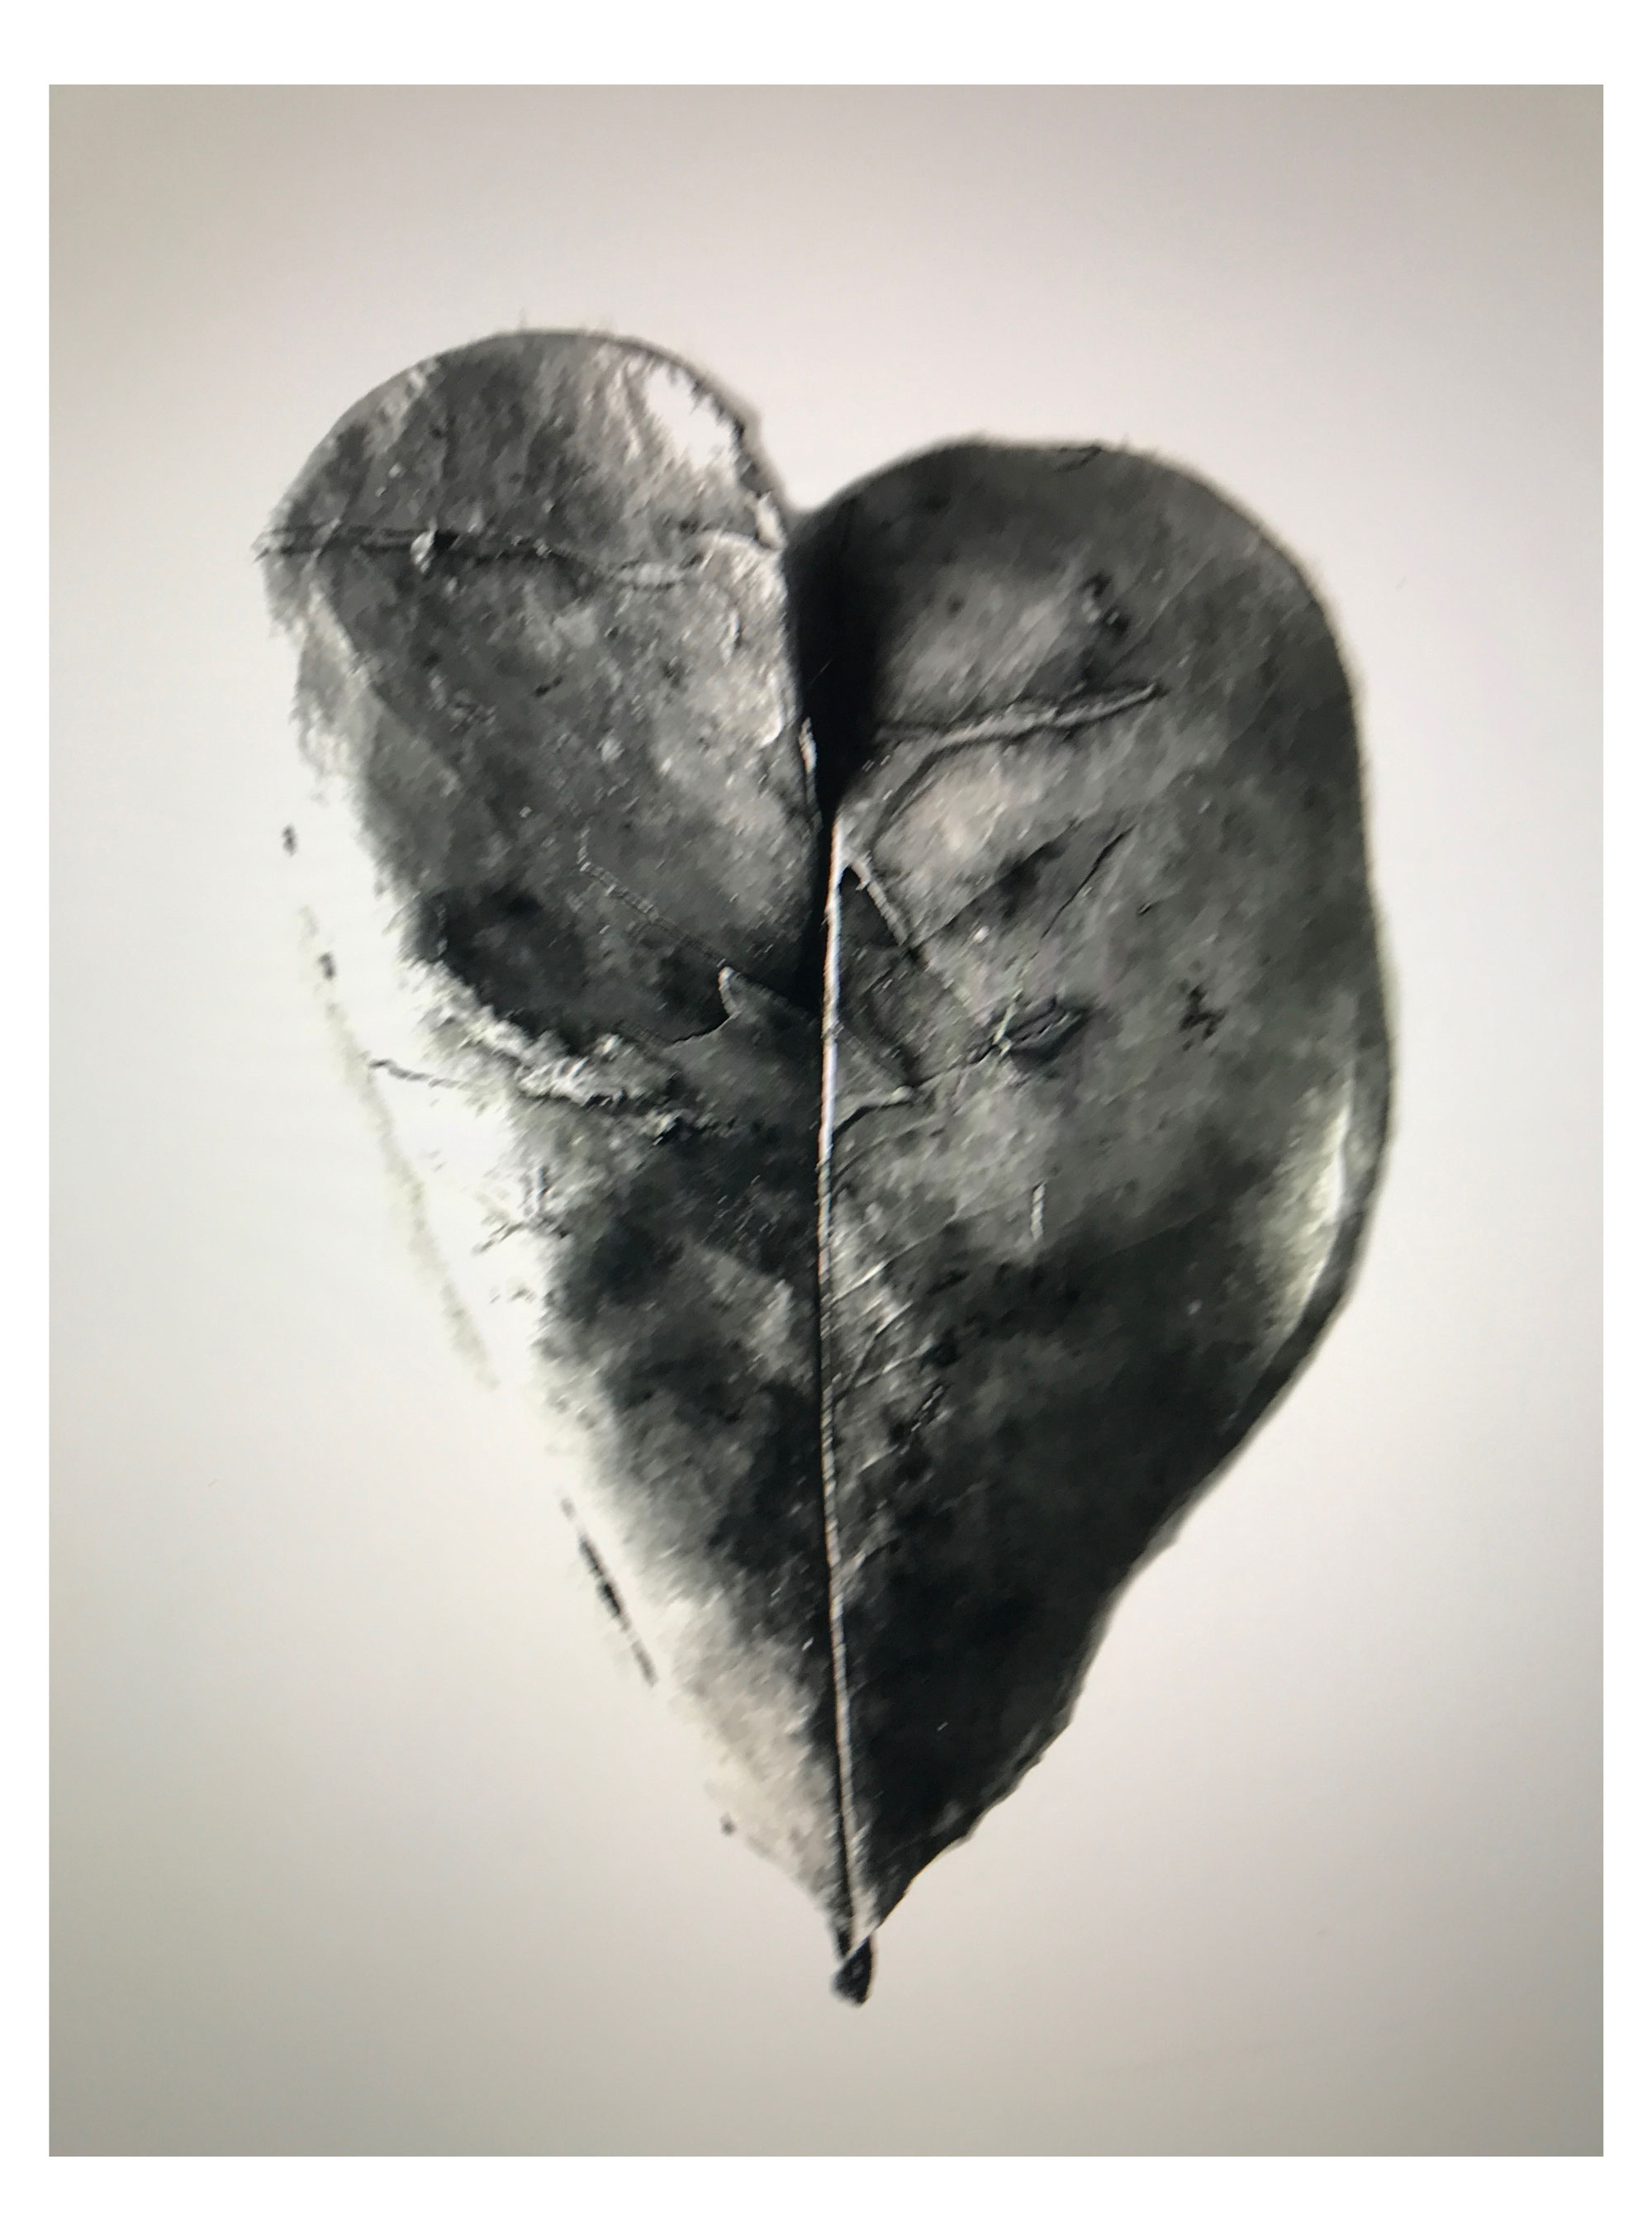 Out of focus heart, 24 November 2017